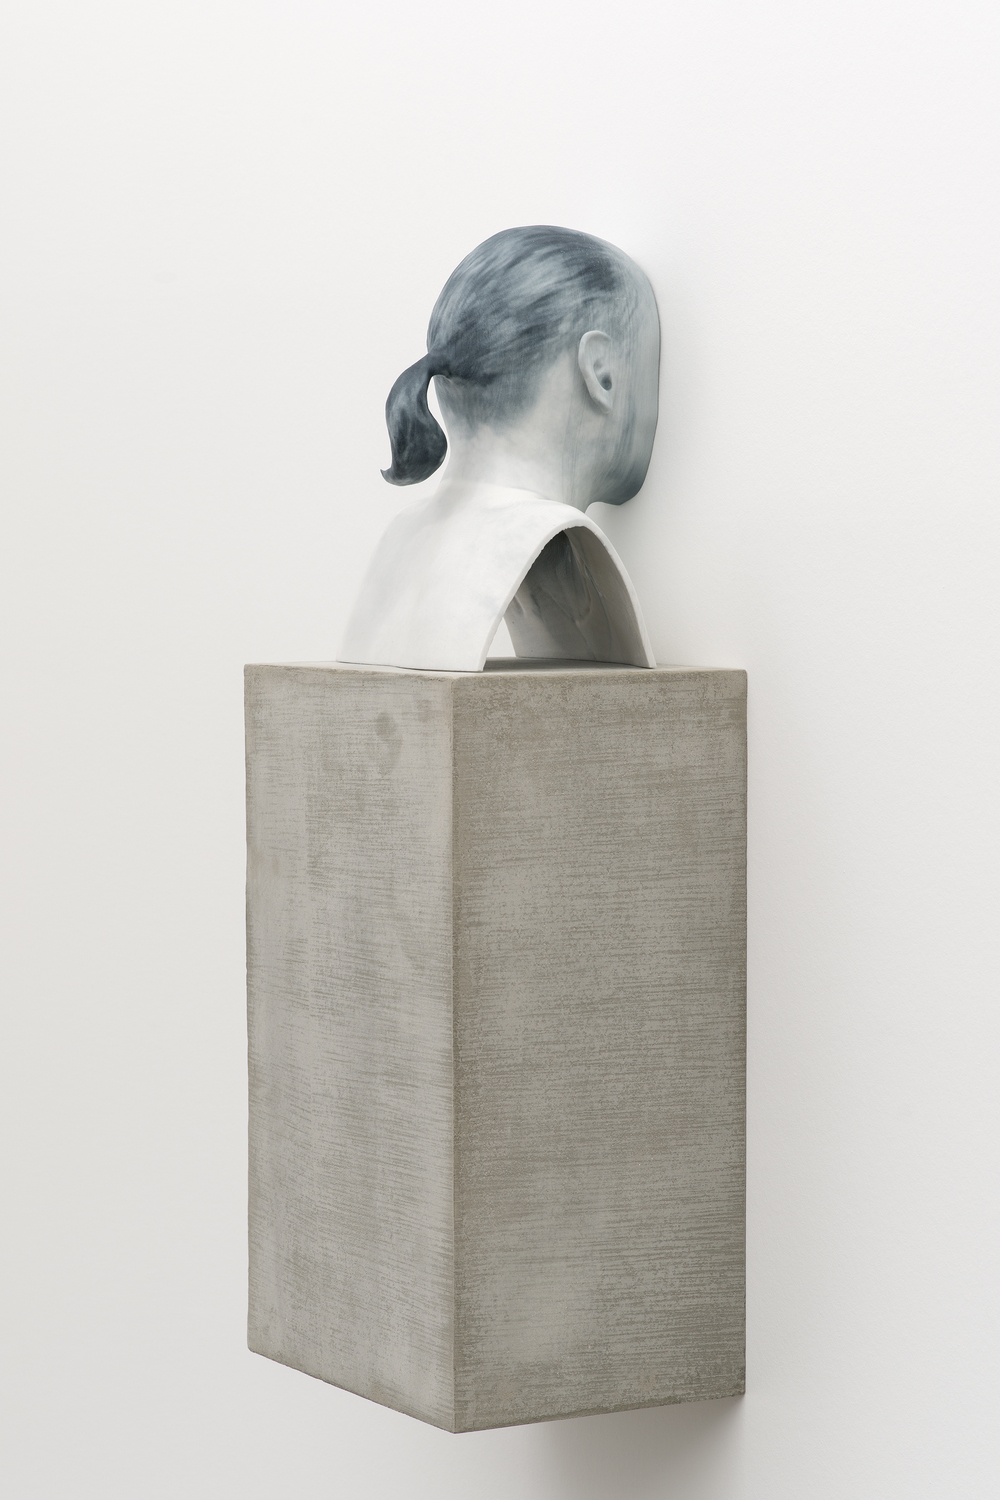 Man of Words (2)   2014   Pigmented plaster ZPrint, concrete    32.25 x 12 x 9 inches